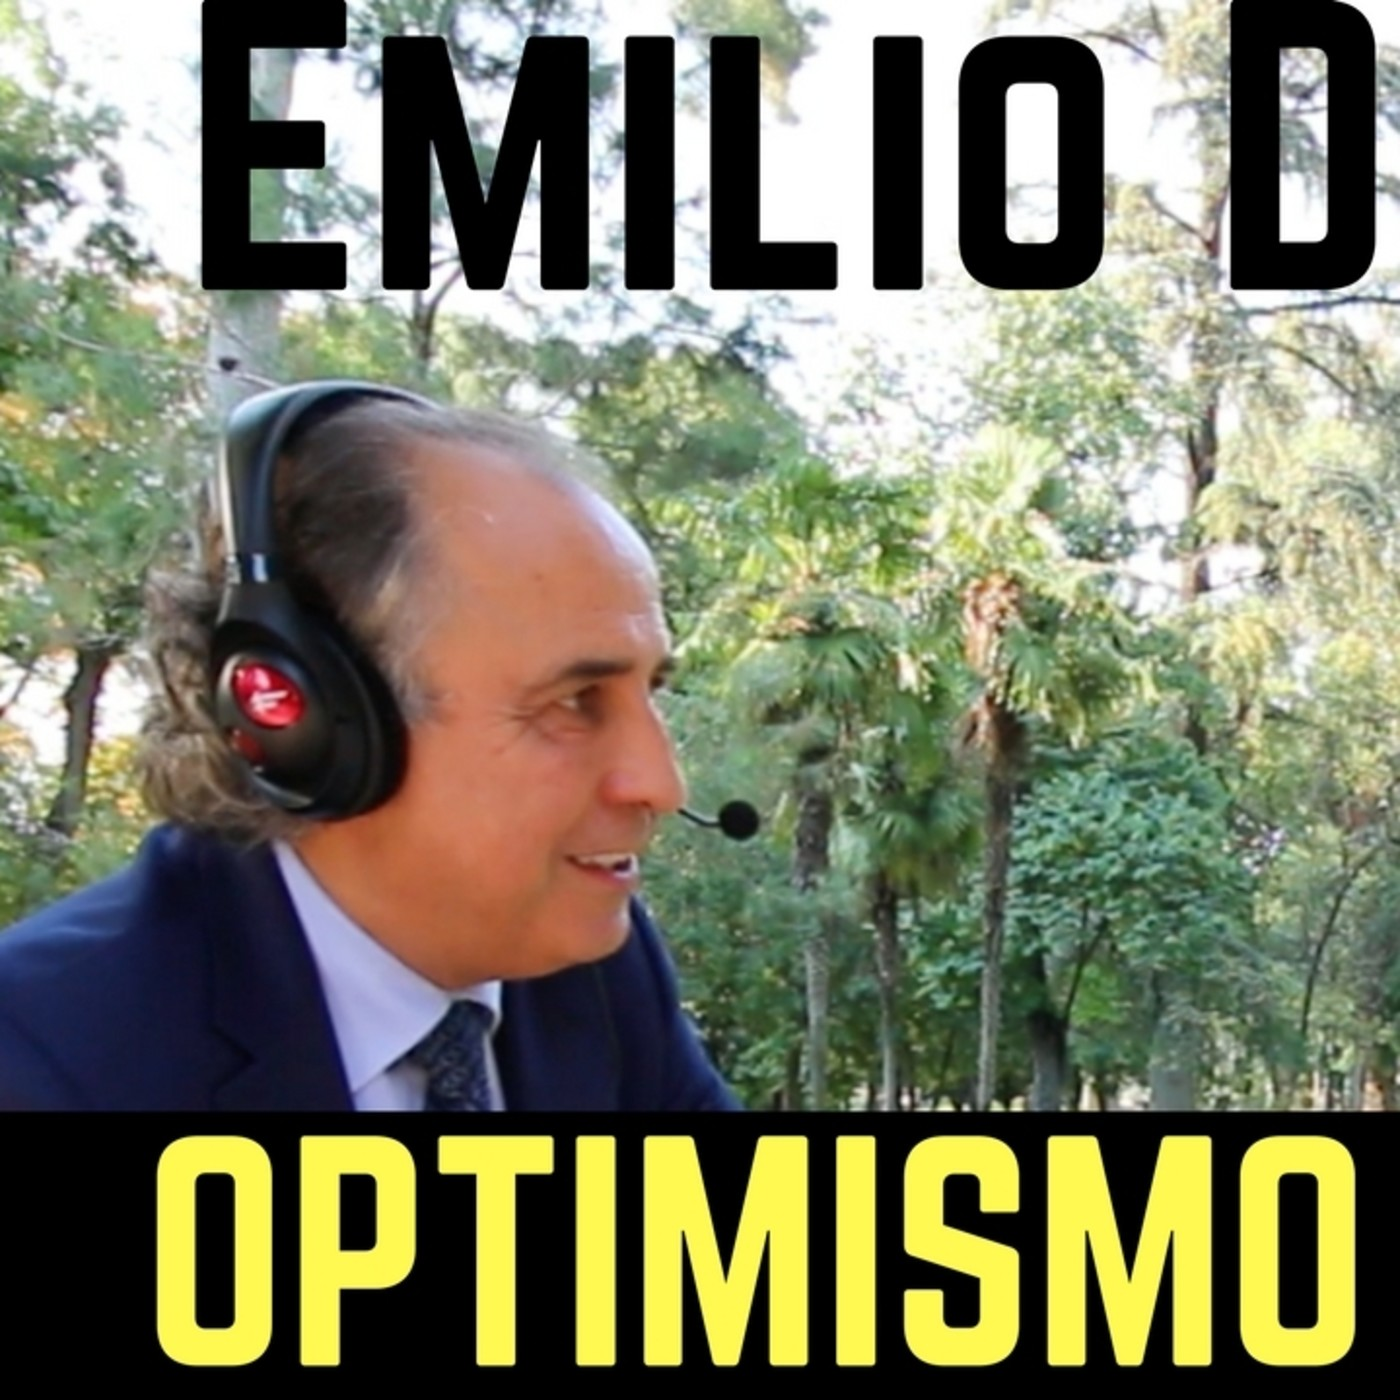 Emilio DURO - Optimismo Real